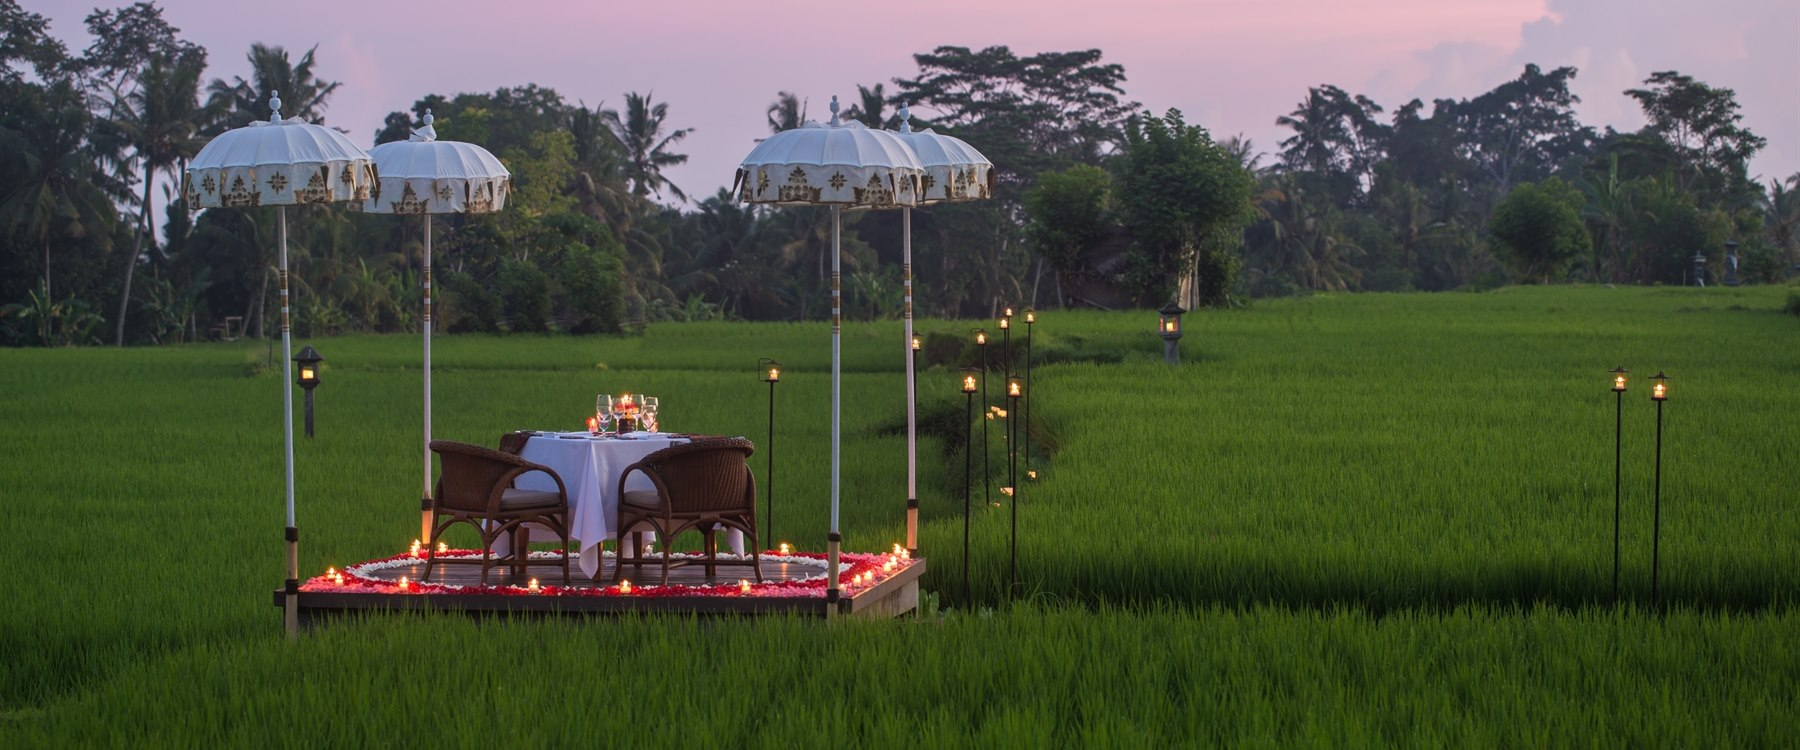 Rice paddy dining experience  at The Chedi Club Tanah Gajah